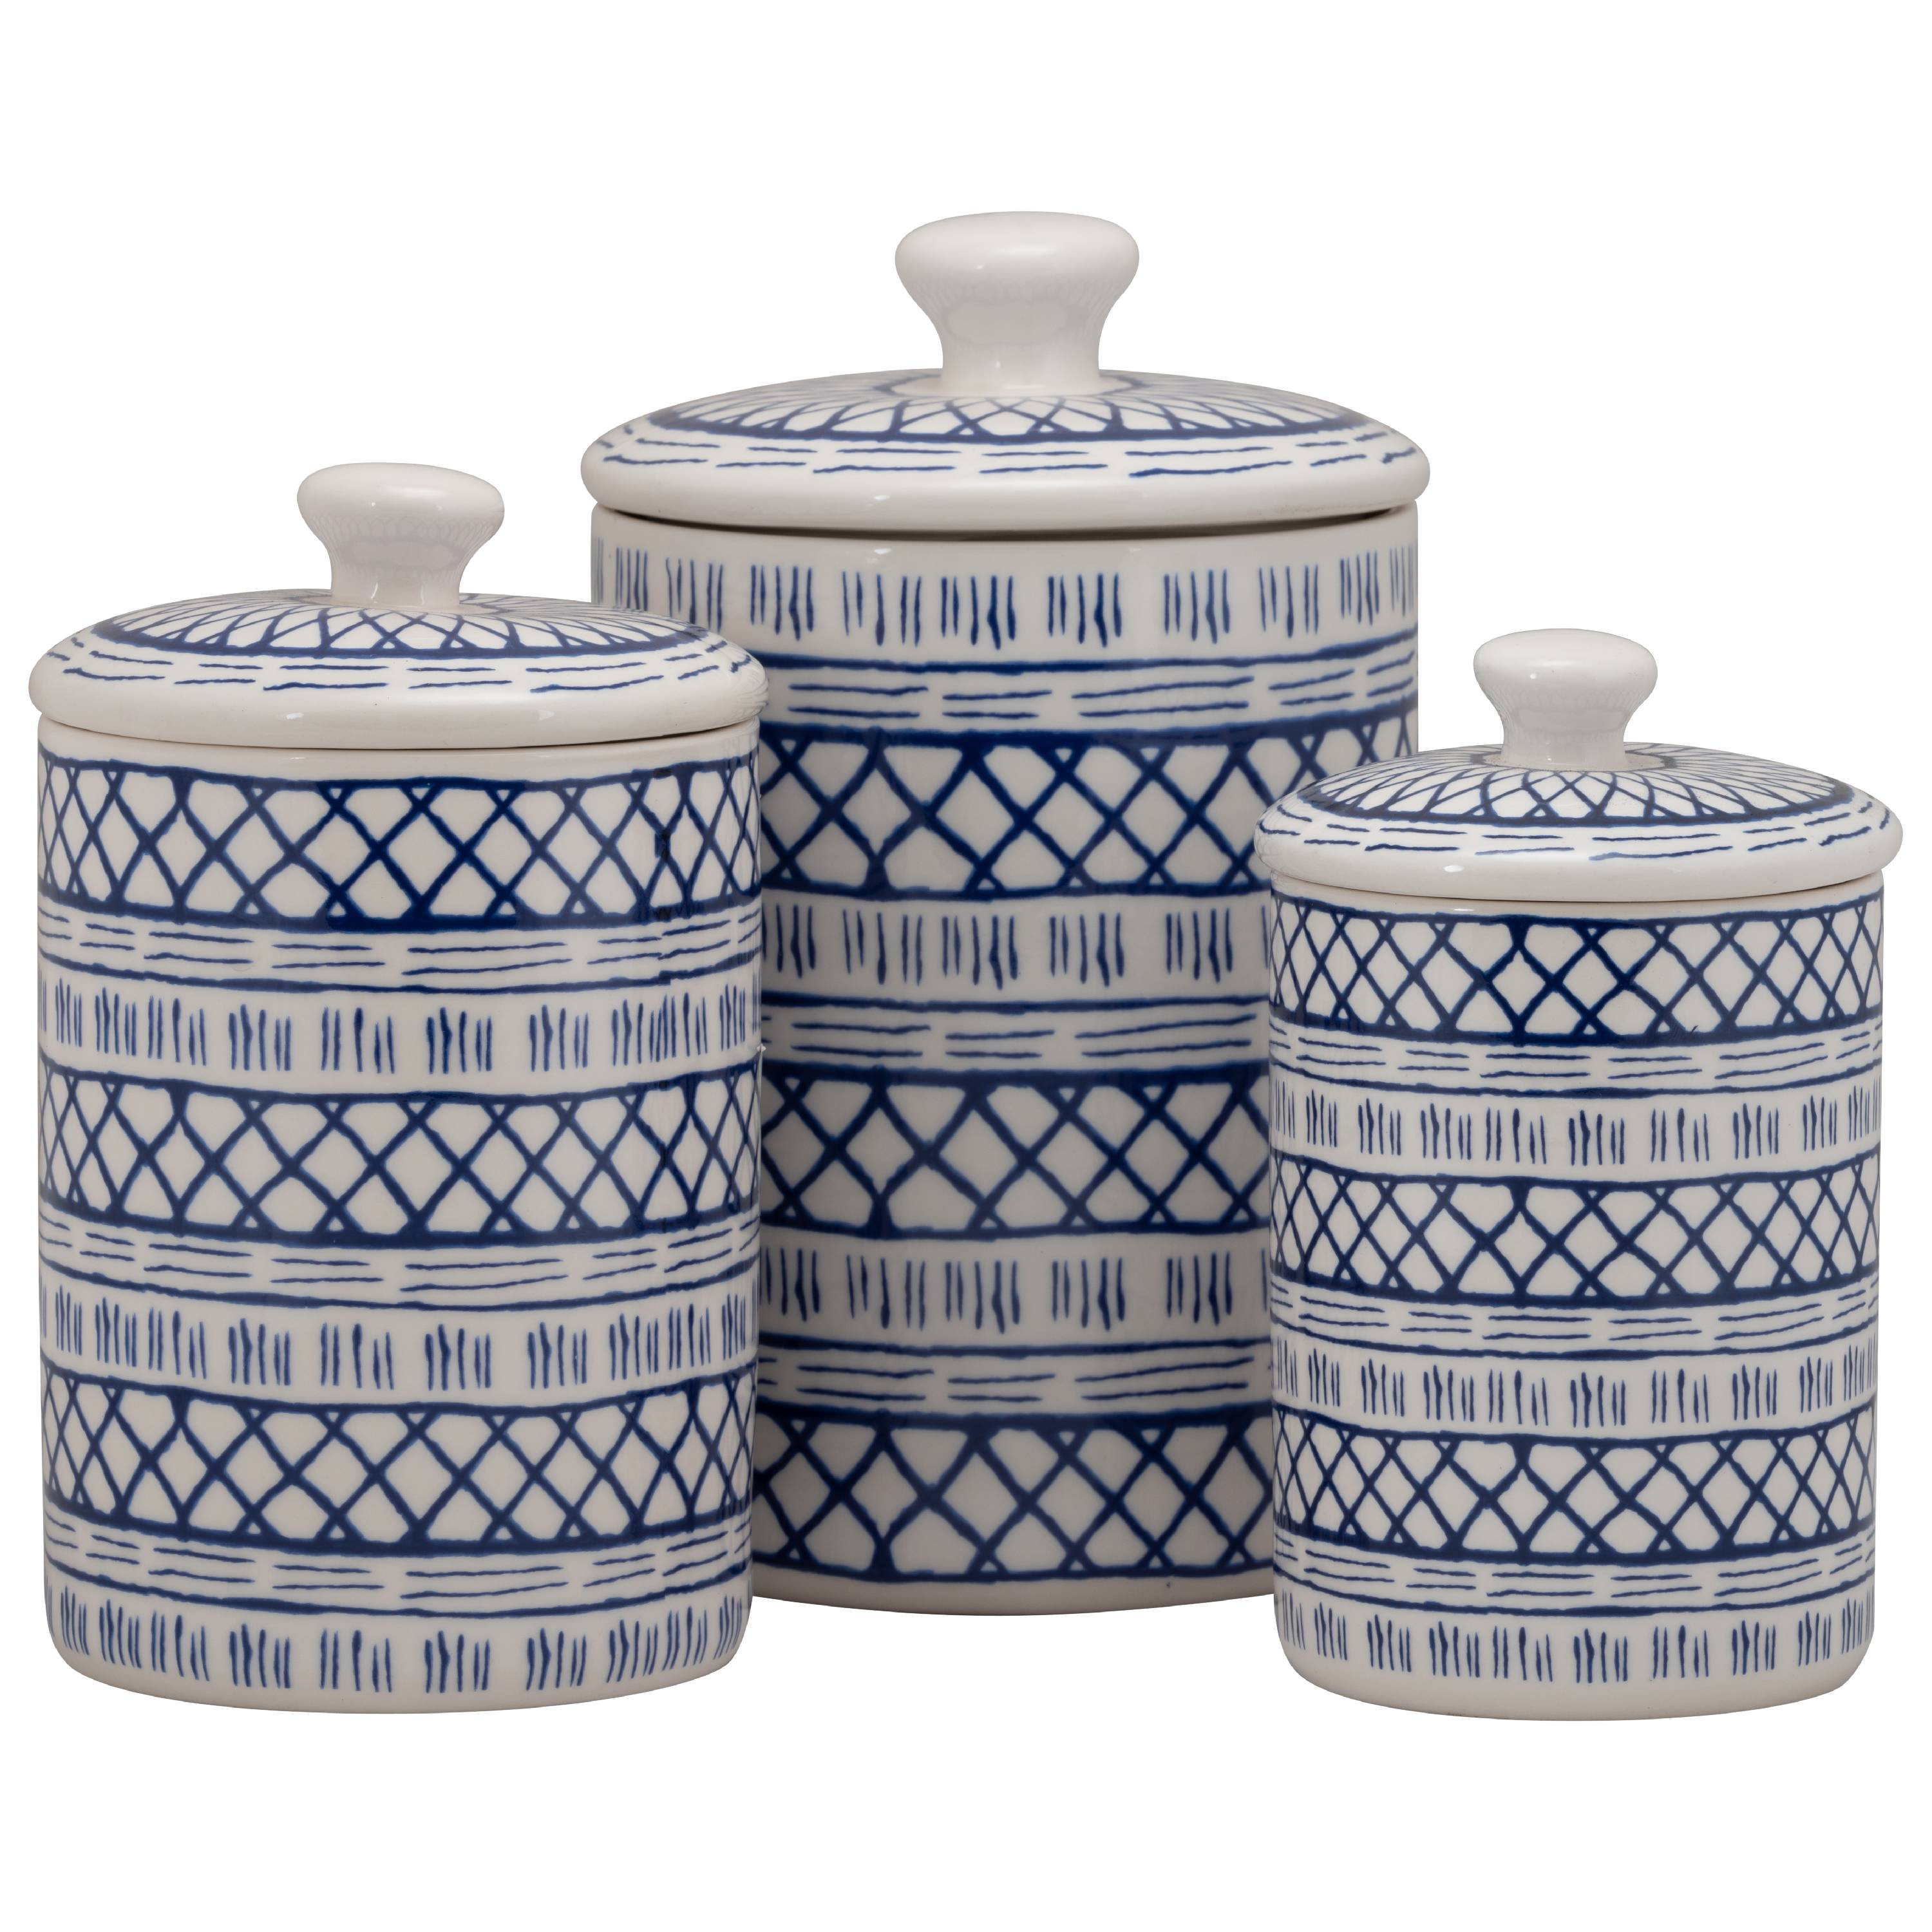 10 Strawberry Street Marina 3 Piece Porcelain Canister Set, White Blue by 10 Strawberry Street